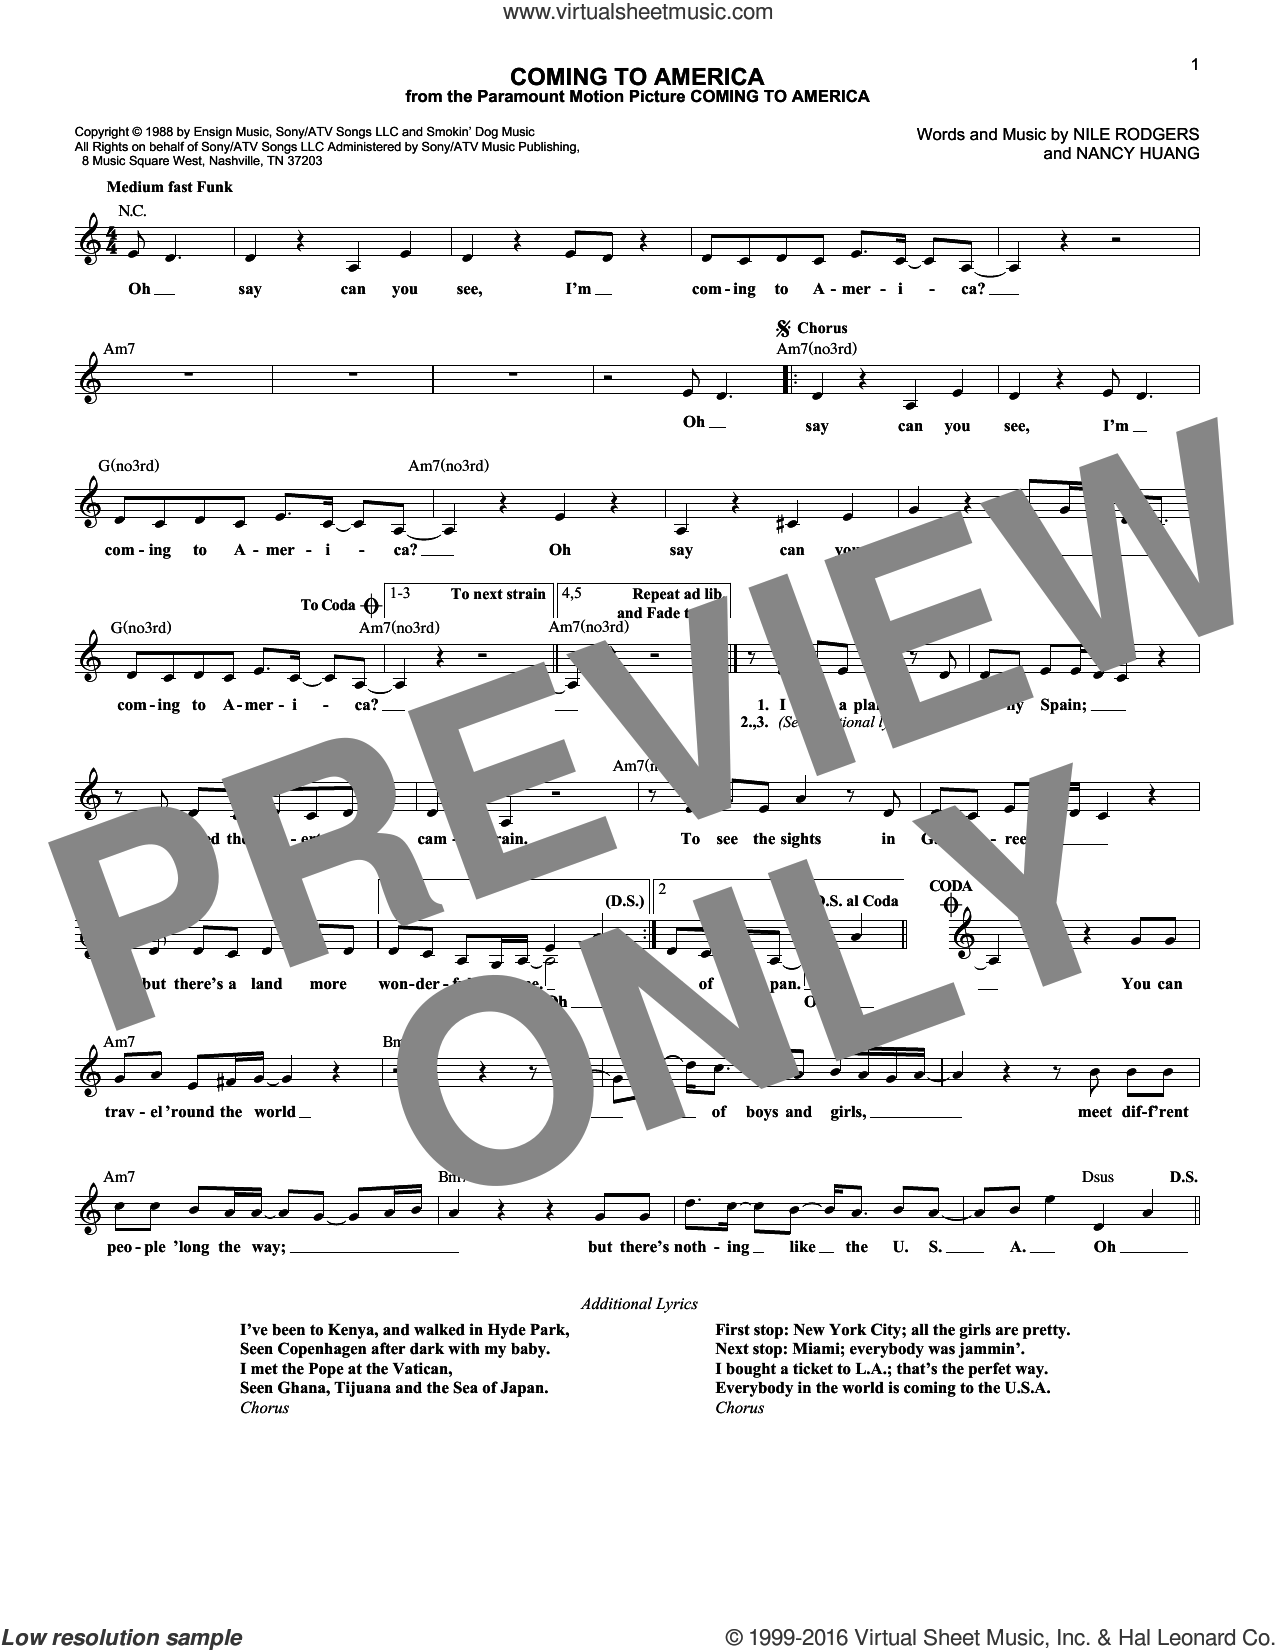 Coming To America sheet music for voice and other instruments (fake book) by Nile Rodgers and Nancy Huang, intermediate skill level